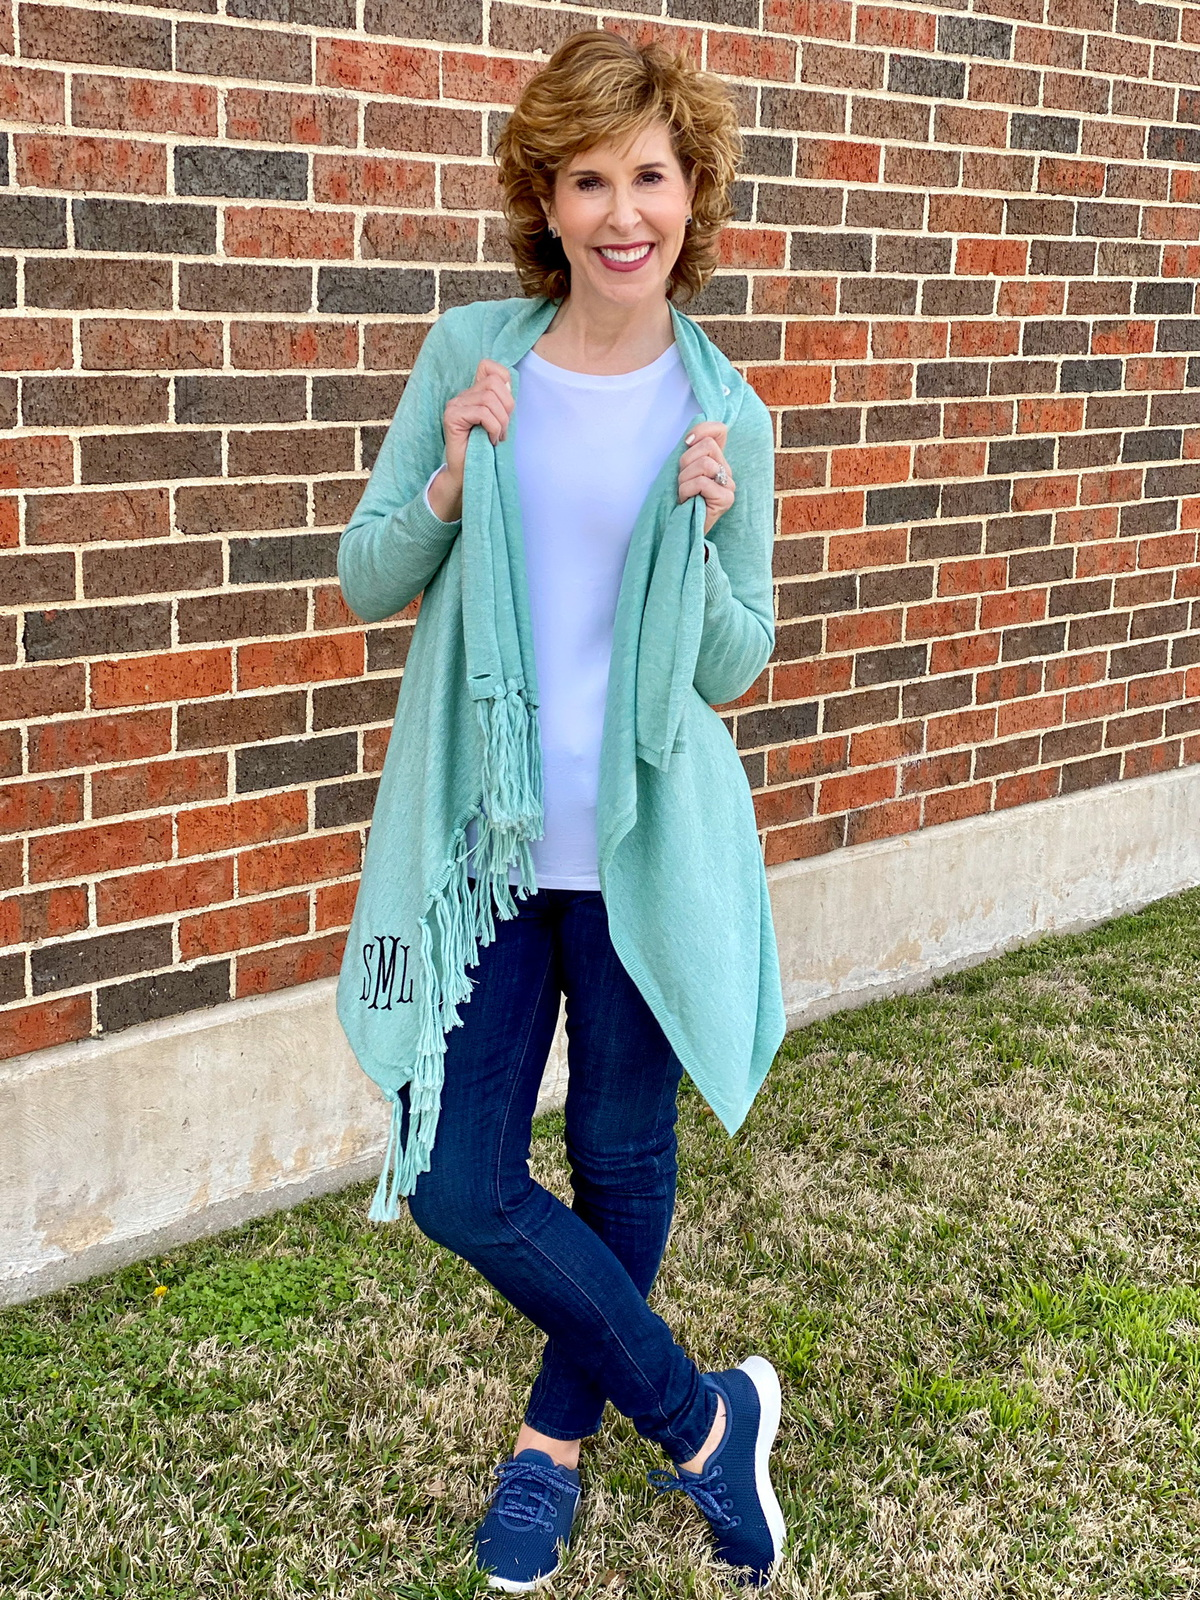 woman wearing seafoam green wrap cardigan and jeans standing in front of a brick wall